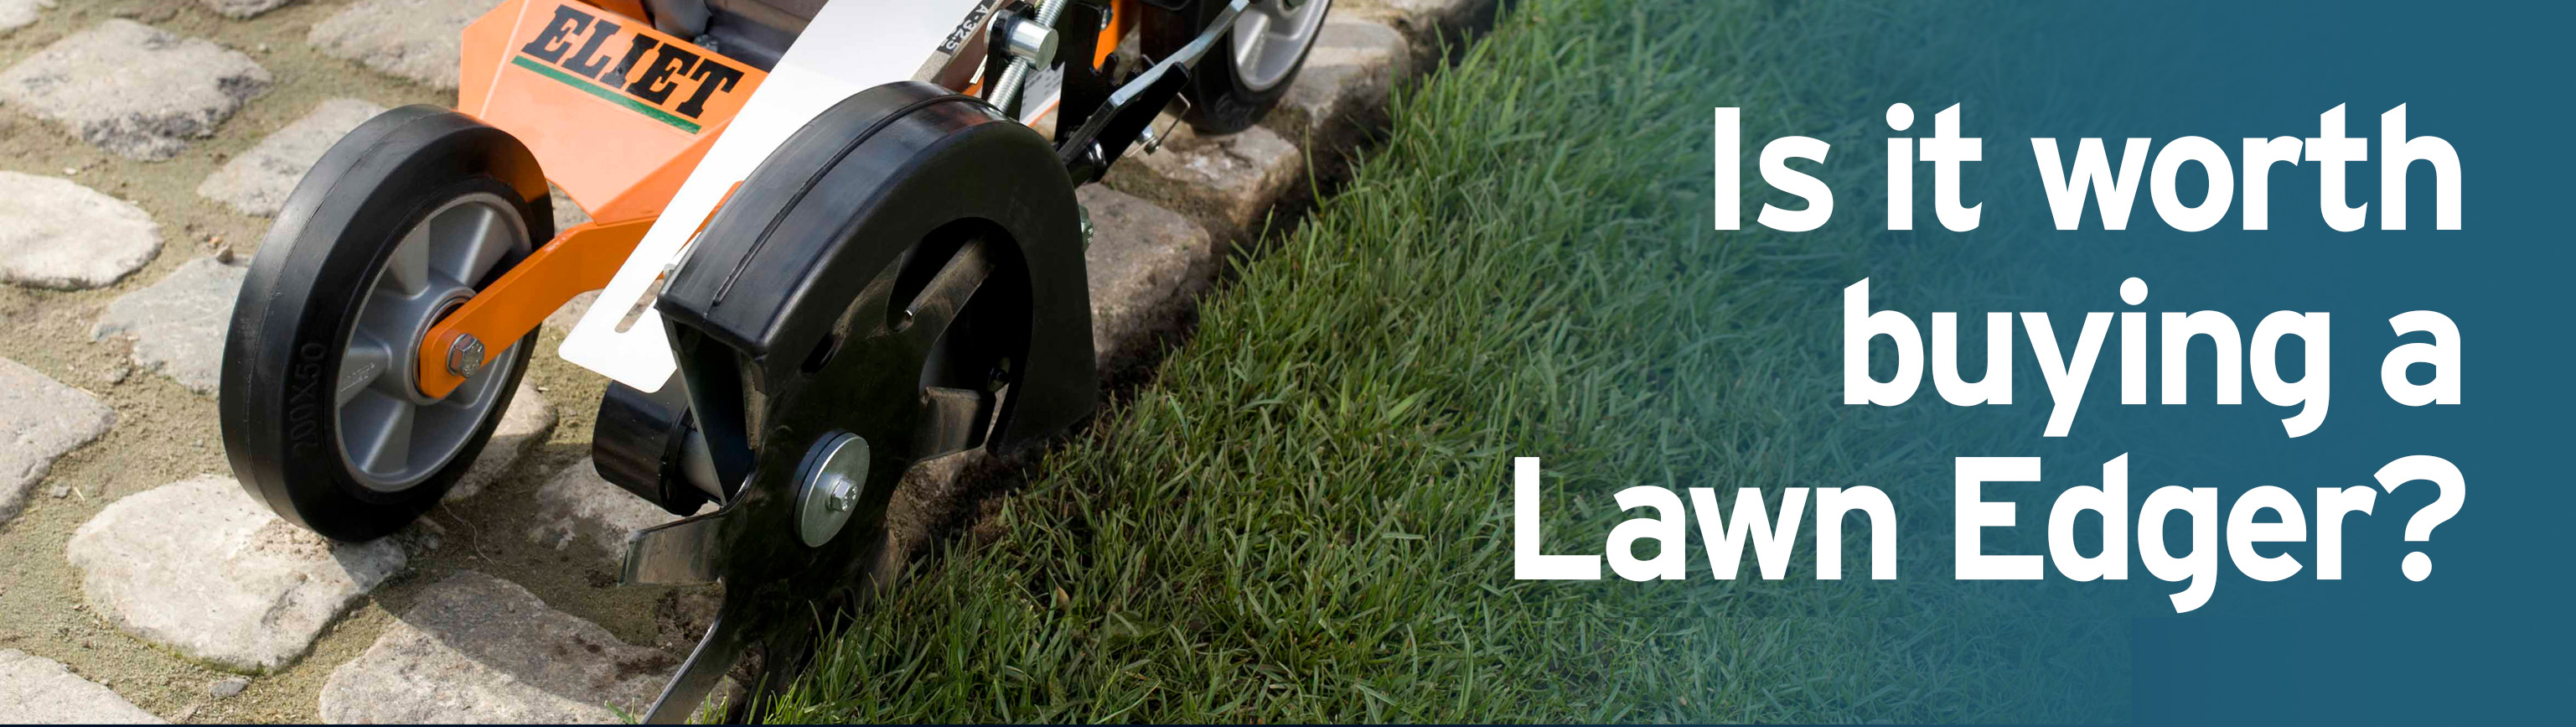 What is a Lawn Edger? Is it worth purchasing?